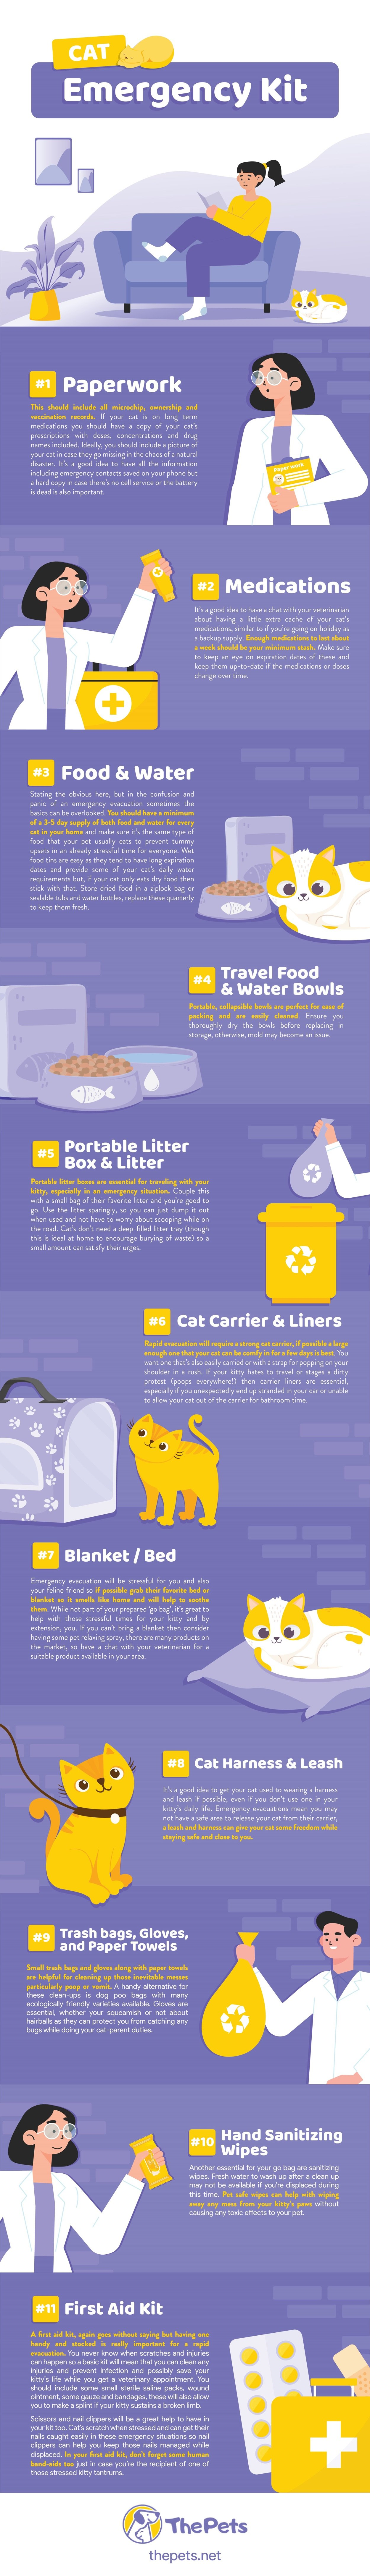 Cat Emergency Kit - How To Make a Cat First Aid Kit